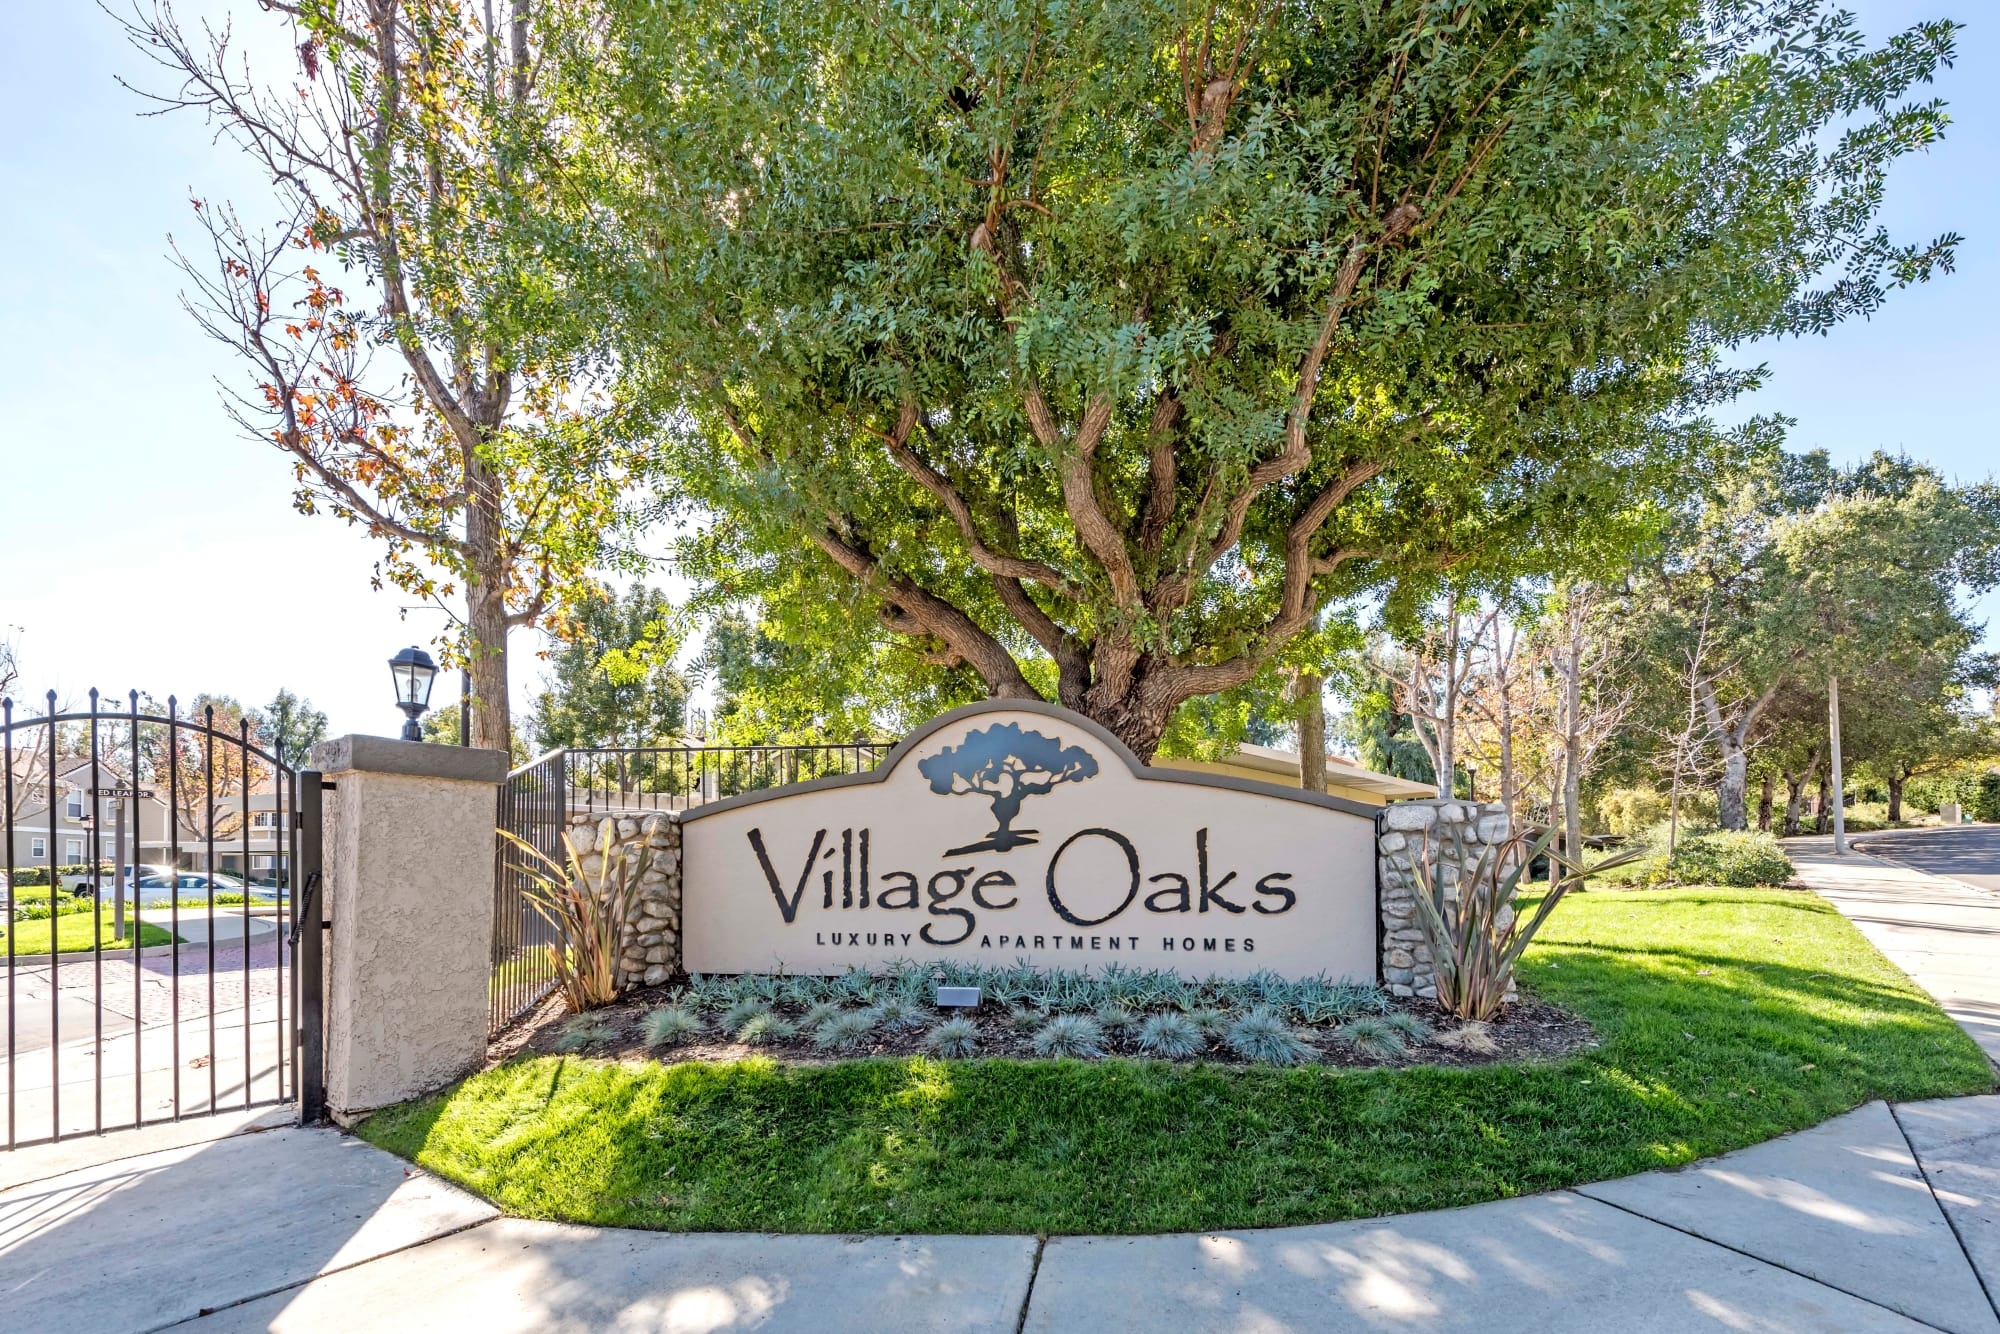 Monument sign at Village Oaks in Chino Hills, California